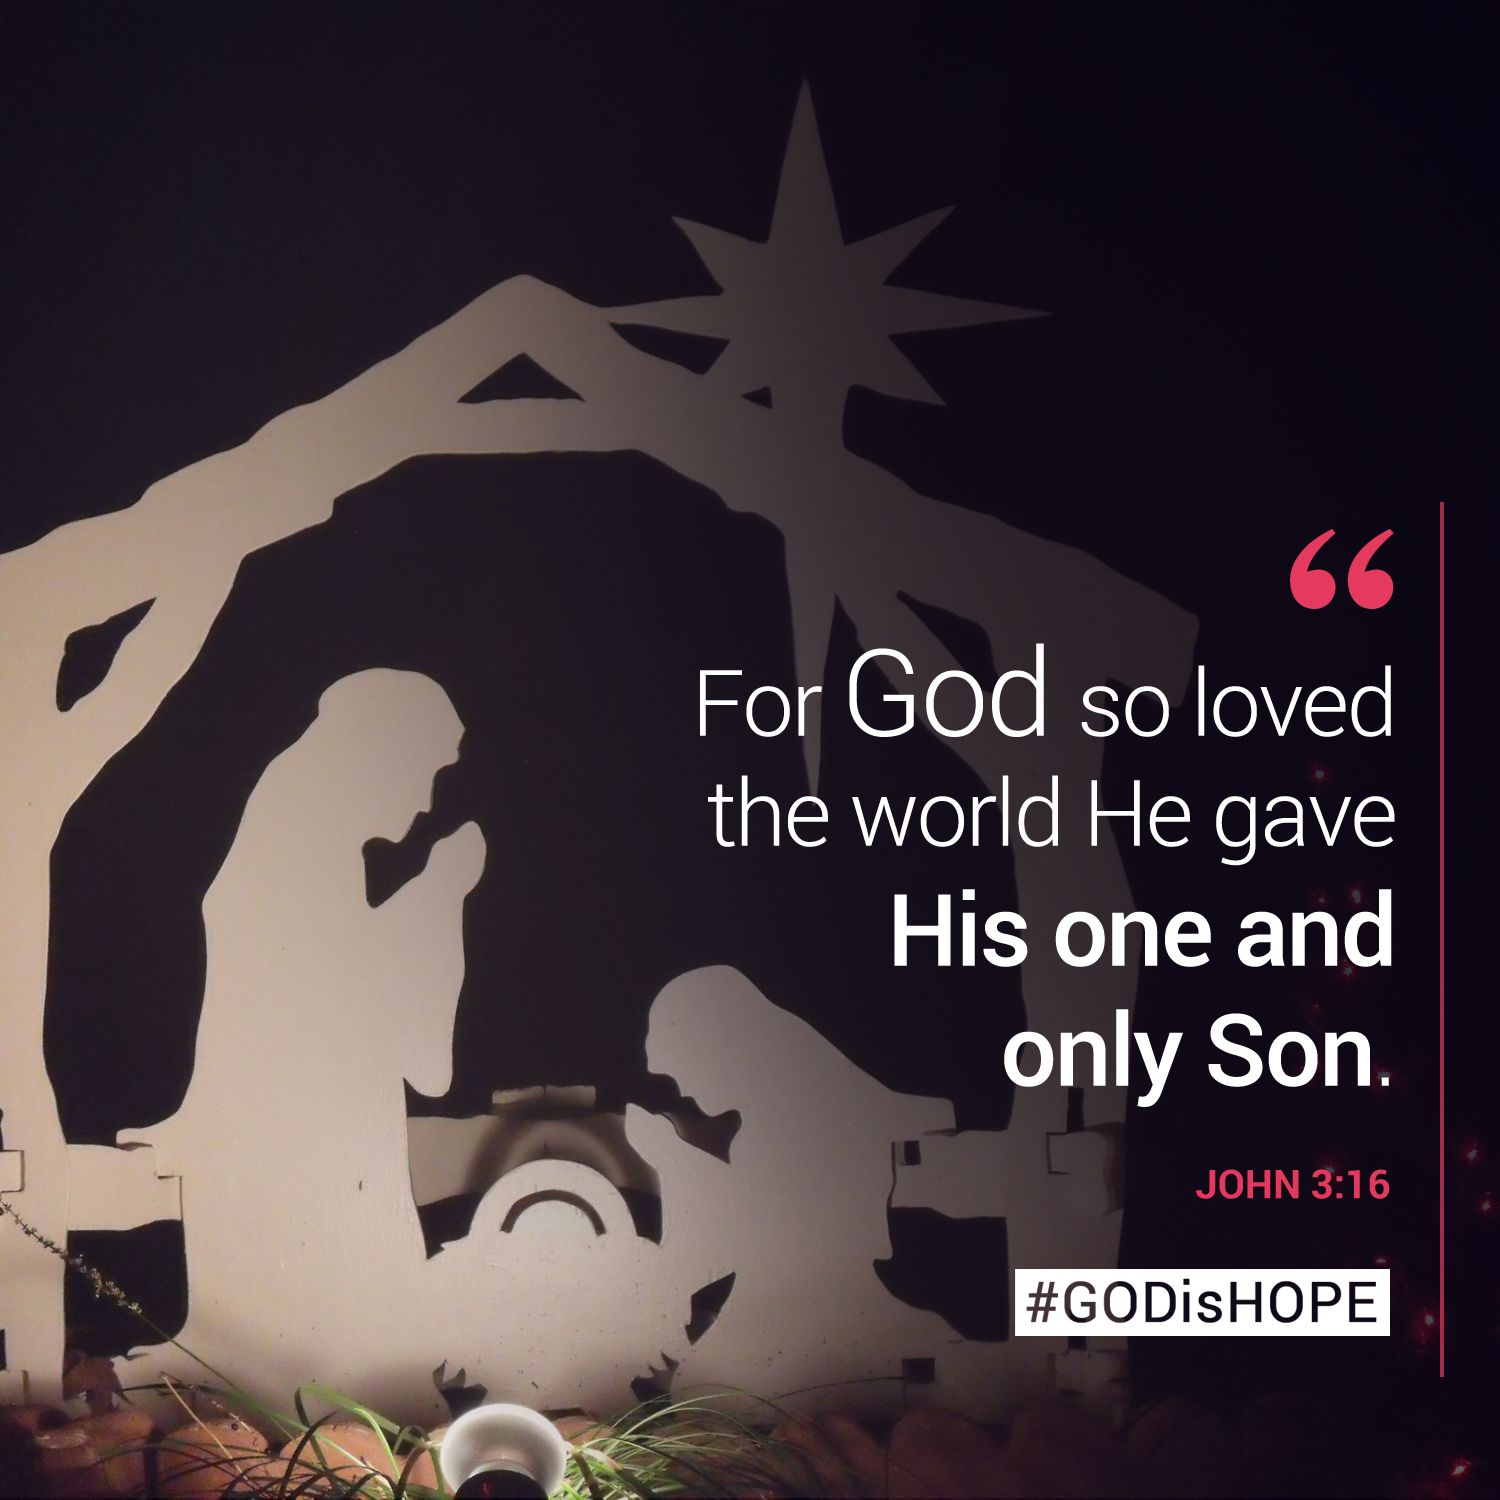 For God so loved the world He gave His one and only Son. - John 3:16 ...